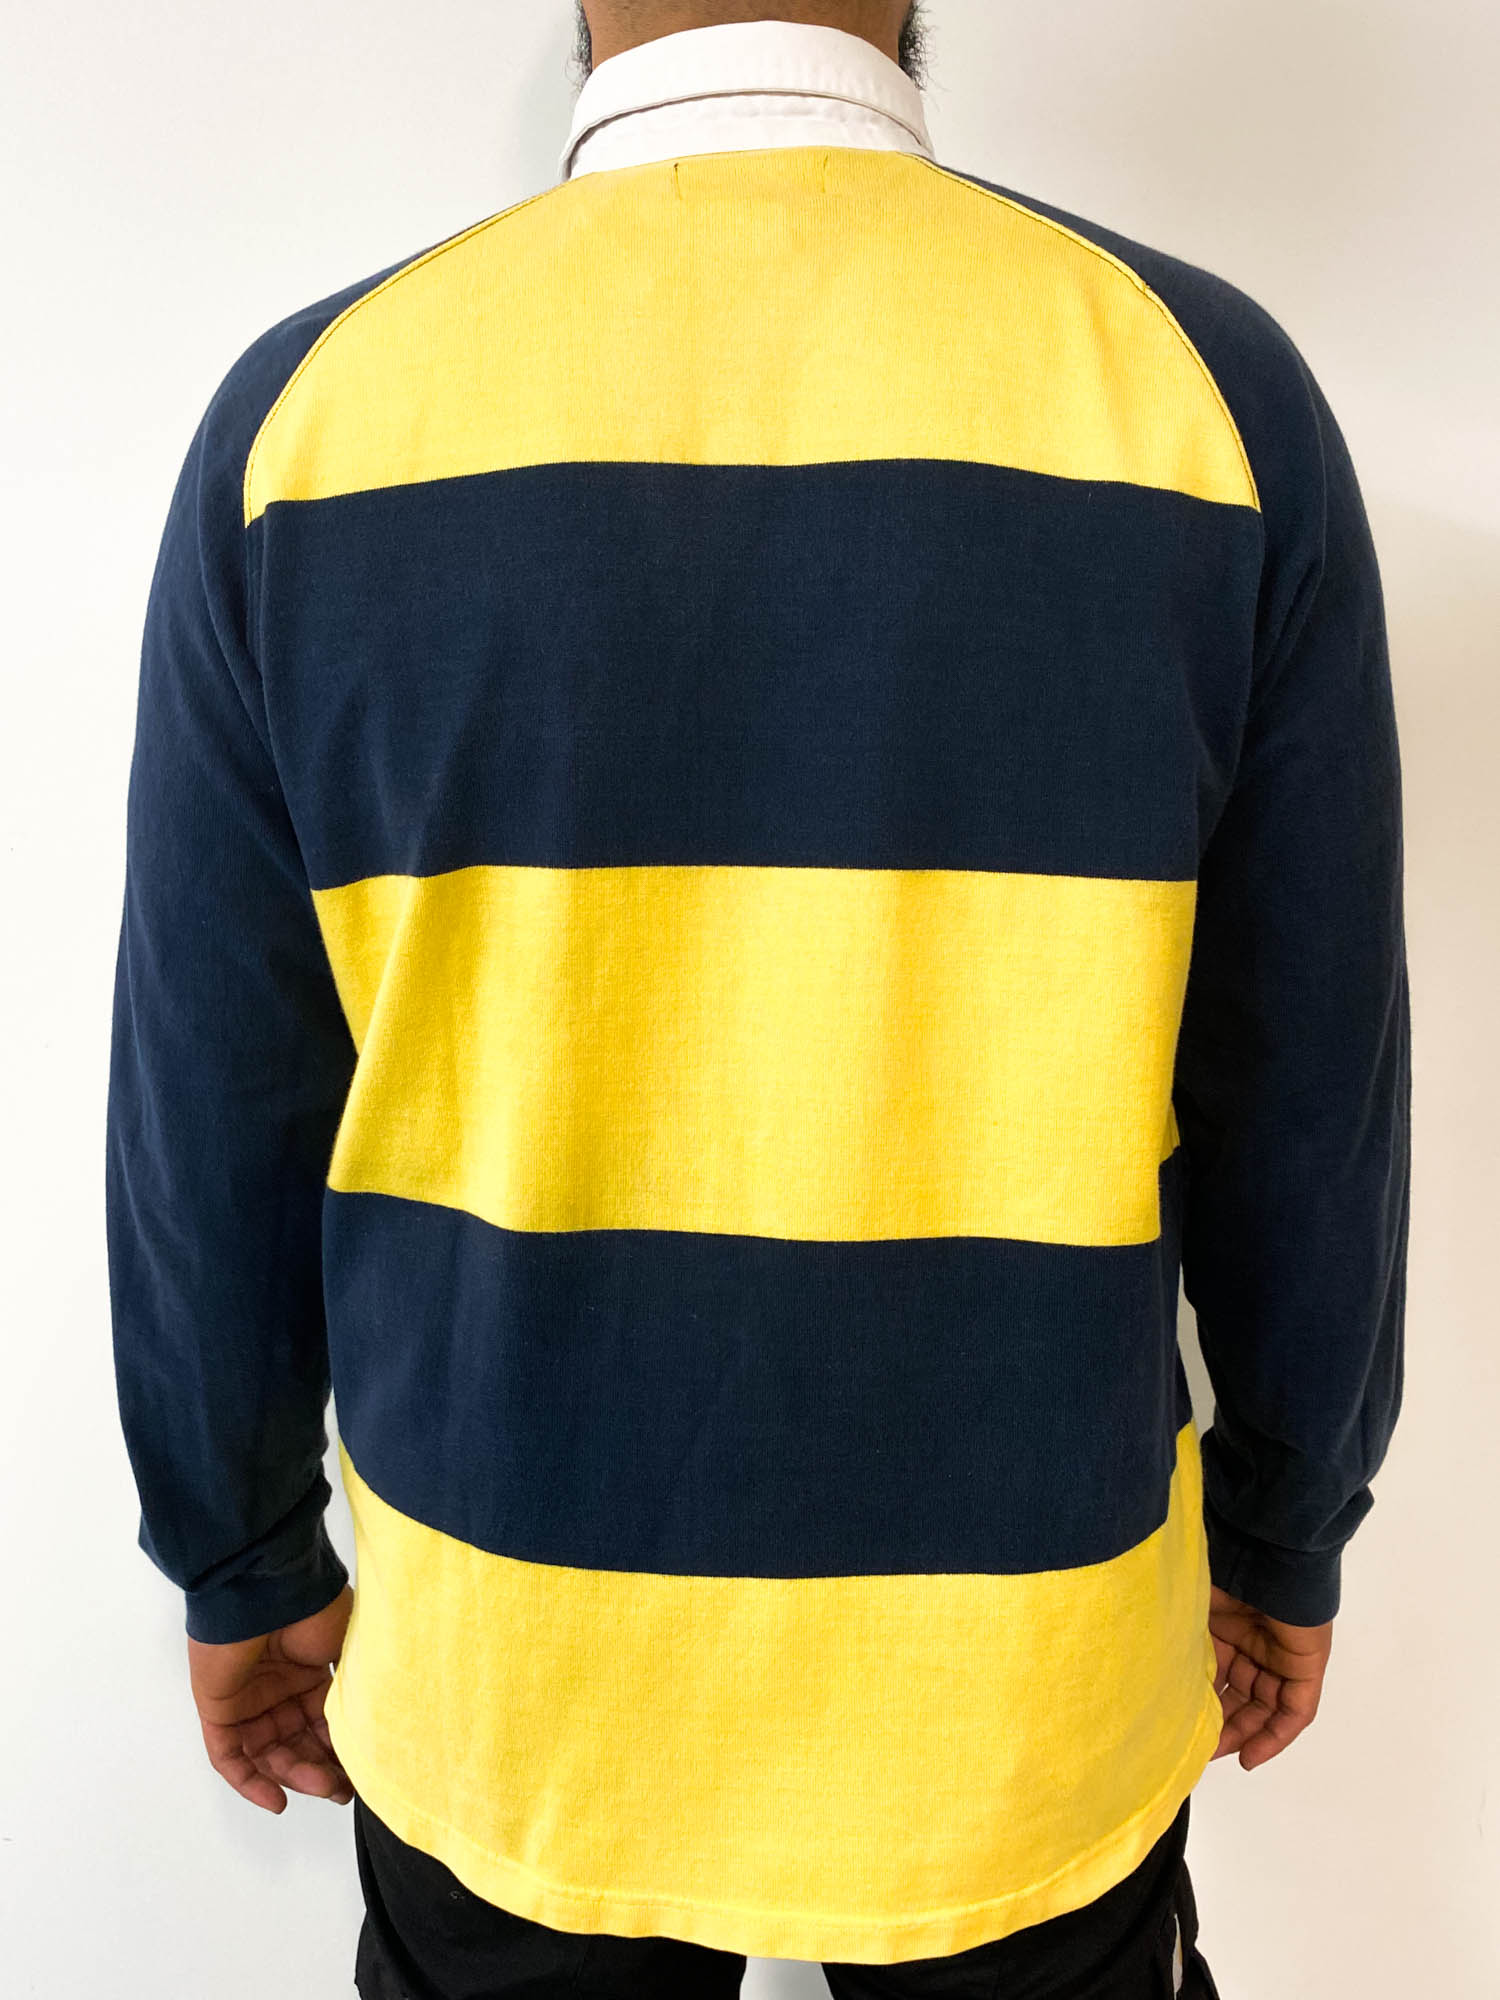 RALPH LAUREN CHAPS RUGBY POLO